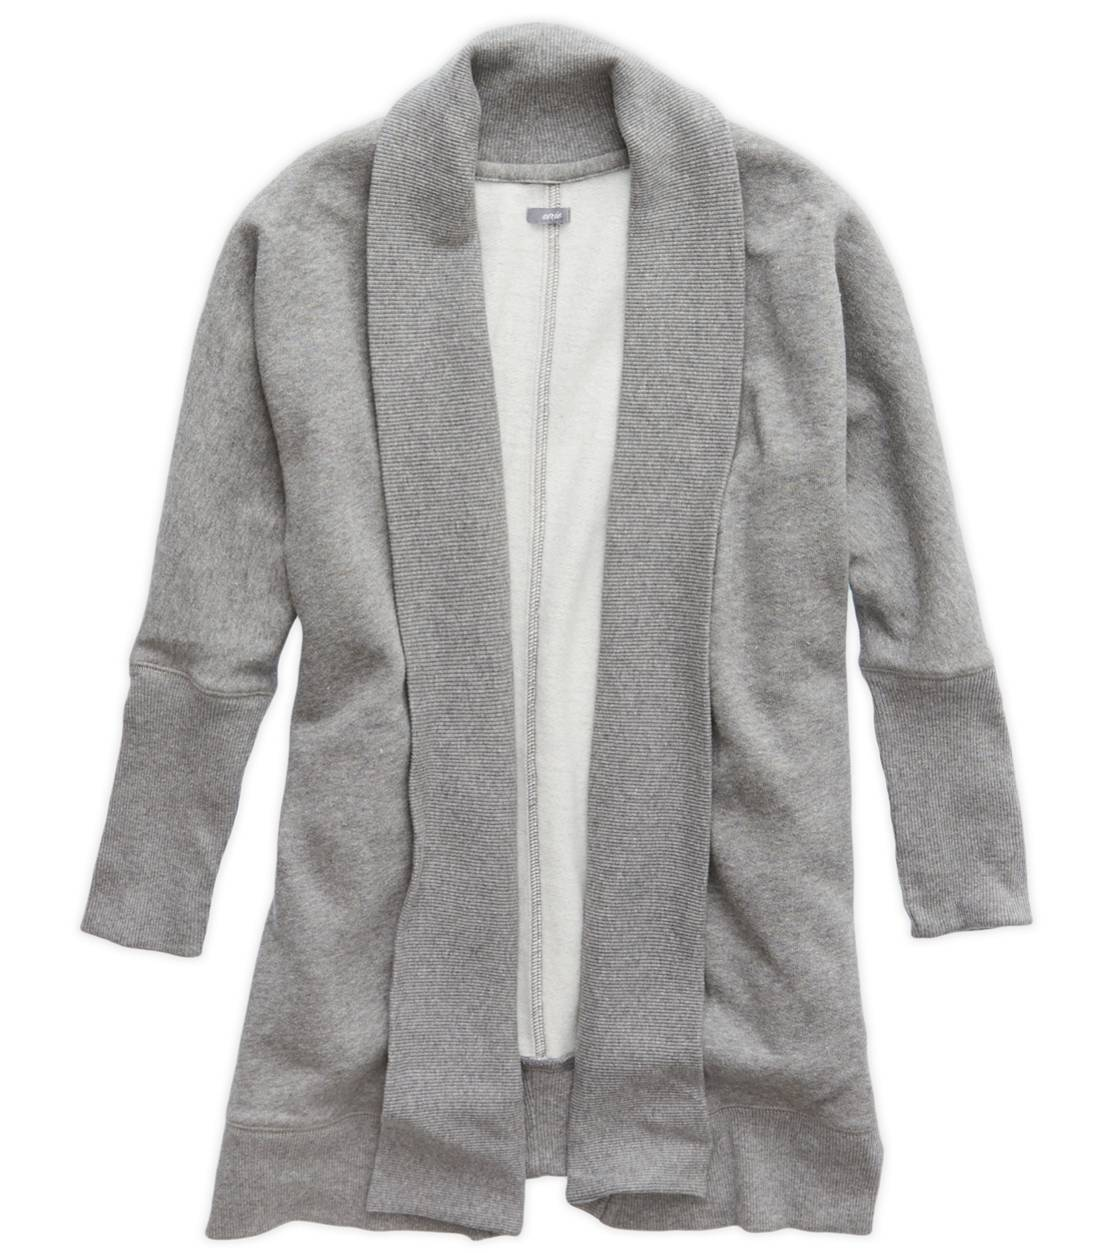 Dark Heather Grey Aerie Cozy Sweatshirt Cardigan